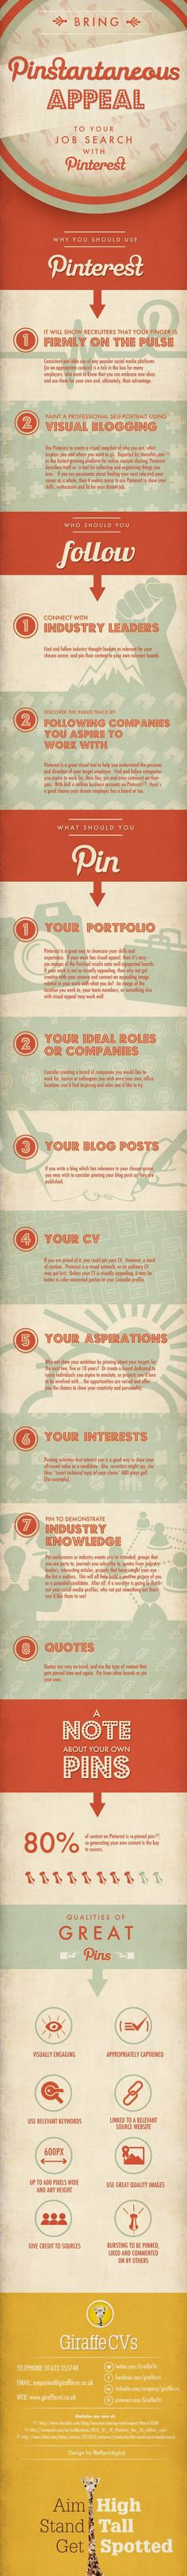 Pinstantaneous Appeal to your job search with vía: CVs = Professional CV Writing Service Inbound Marketing, Marketing Digital, Content Marketing, Online Marketing, Social Media Marketing, Cv Writing Service, Writing Services, Gadget, Interview Advice